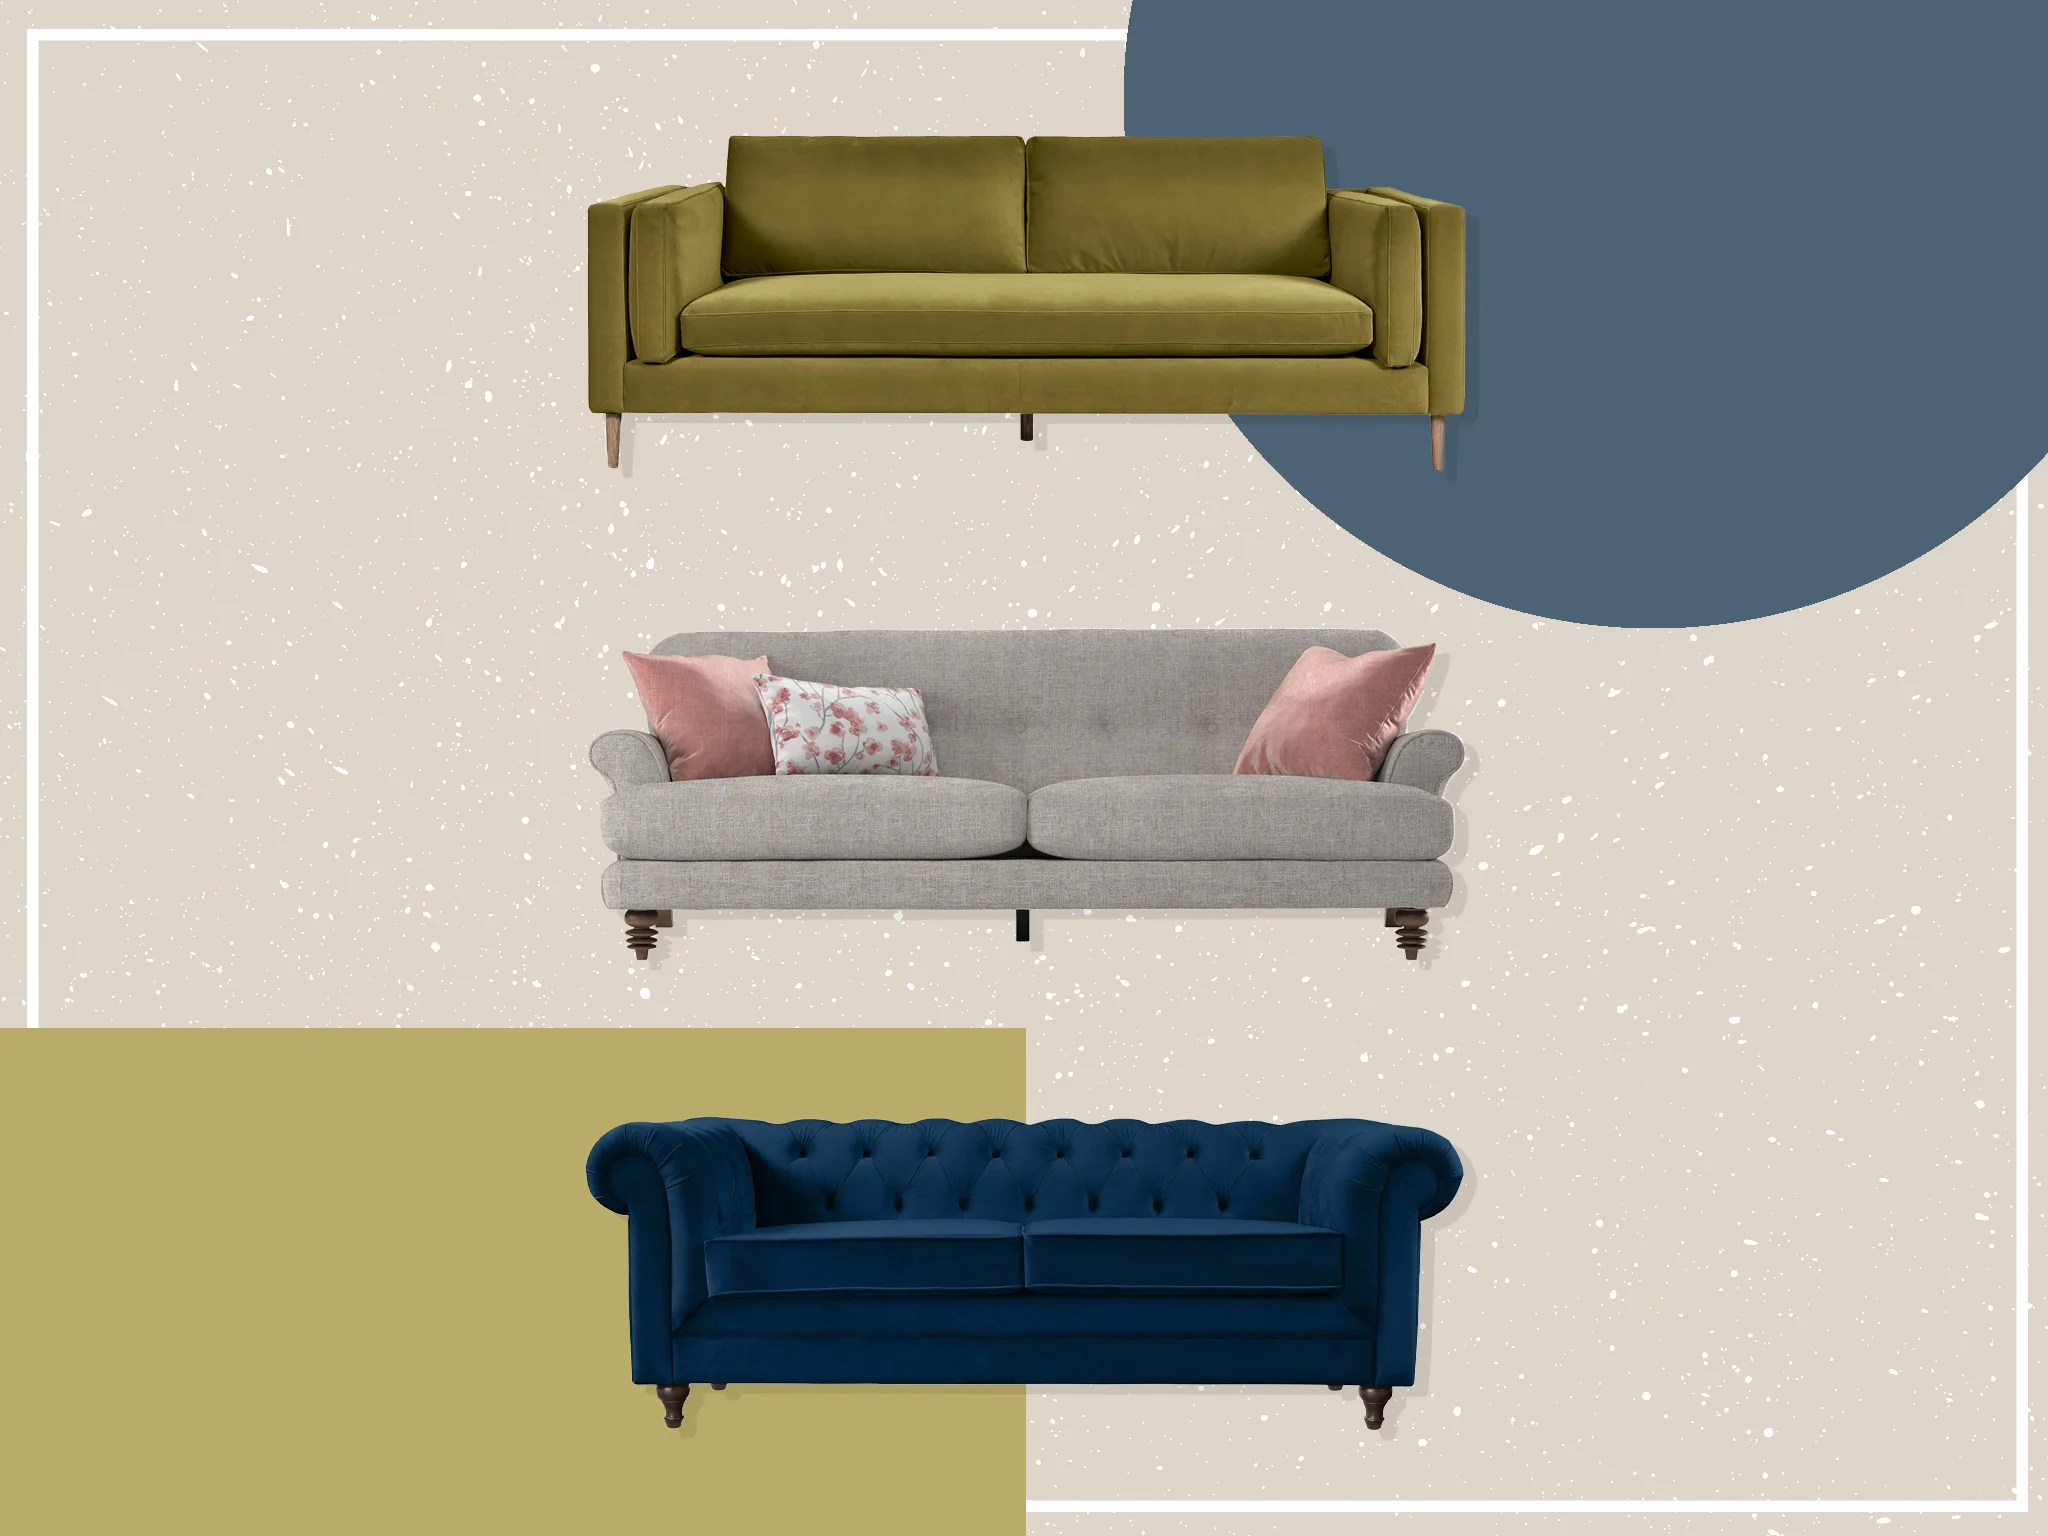 Https Www Independent Co Uk Extras Indybest House Garden Furniture Best Sofa Uk Leather Brands Soft Fabric Comfort Living Room A9482626 Html